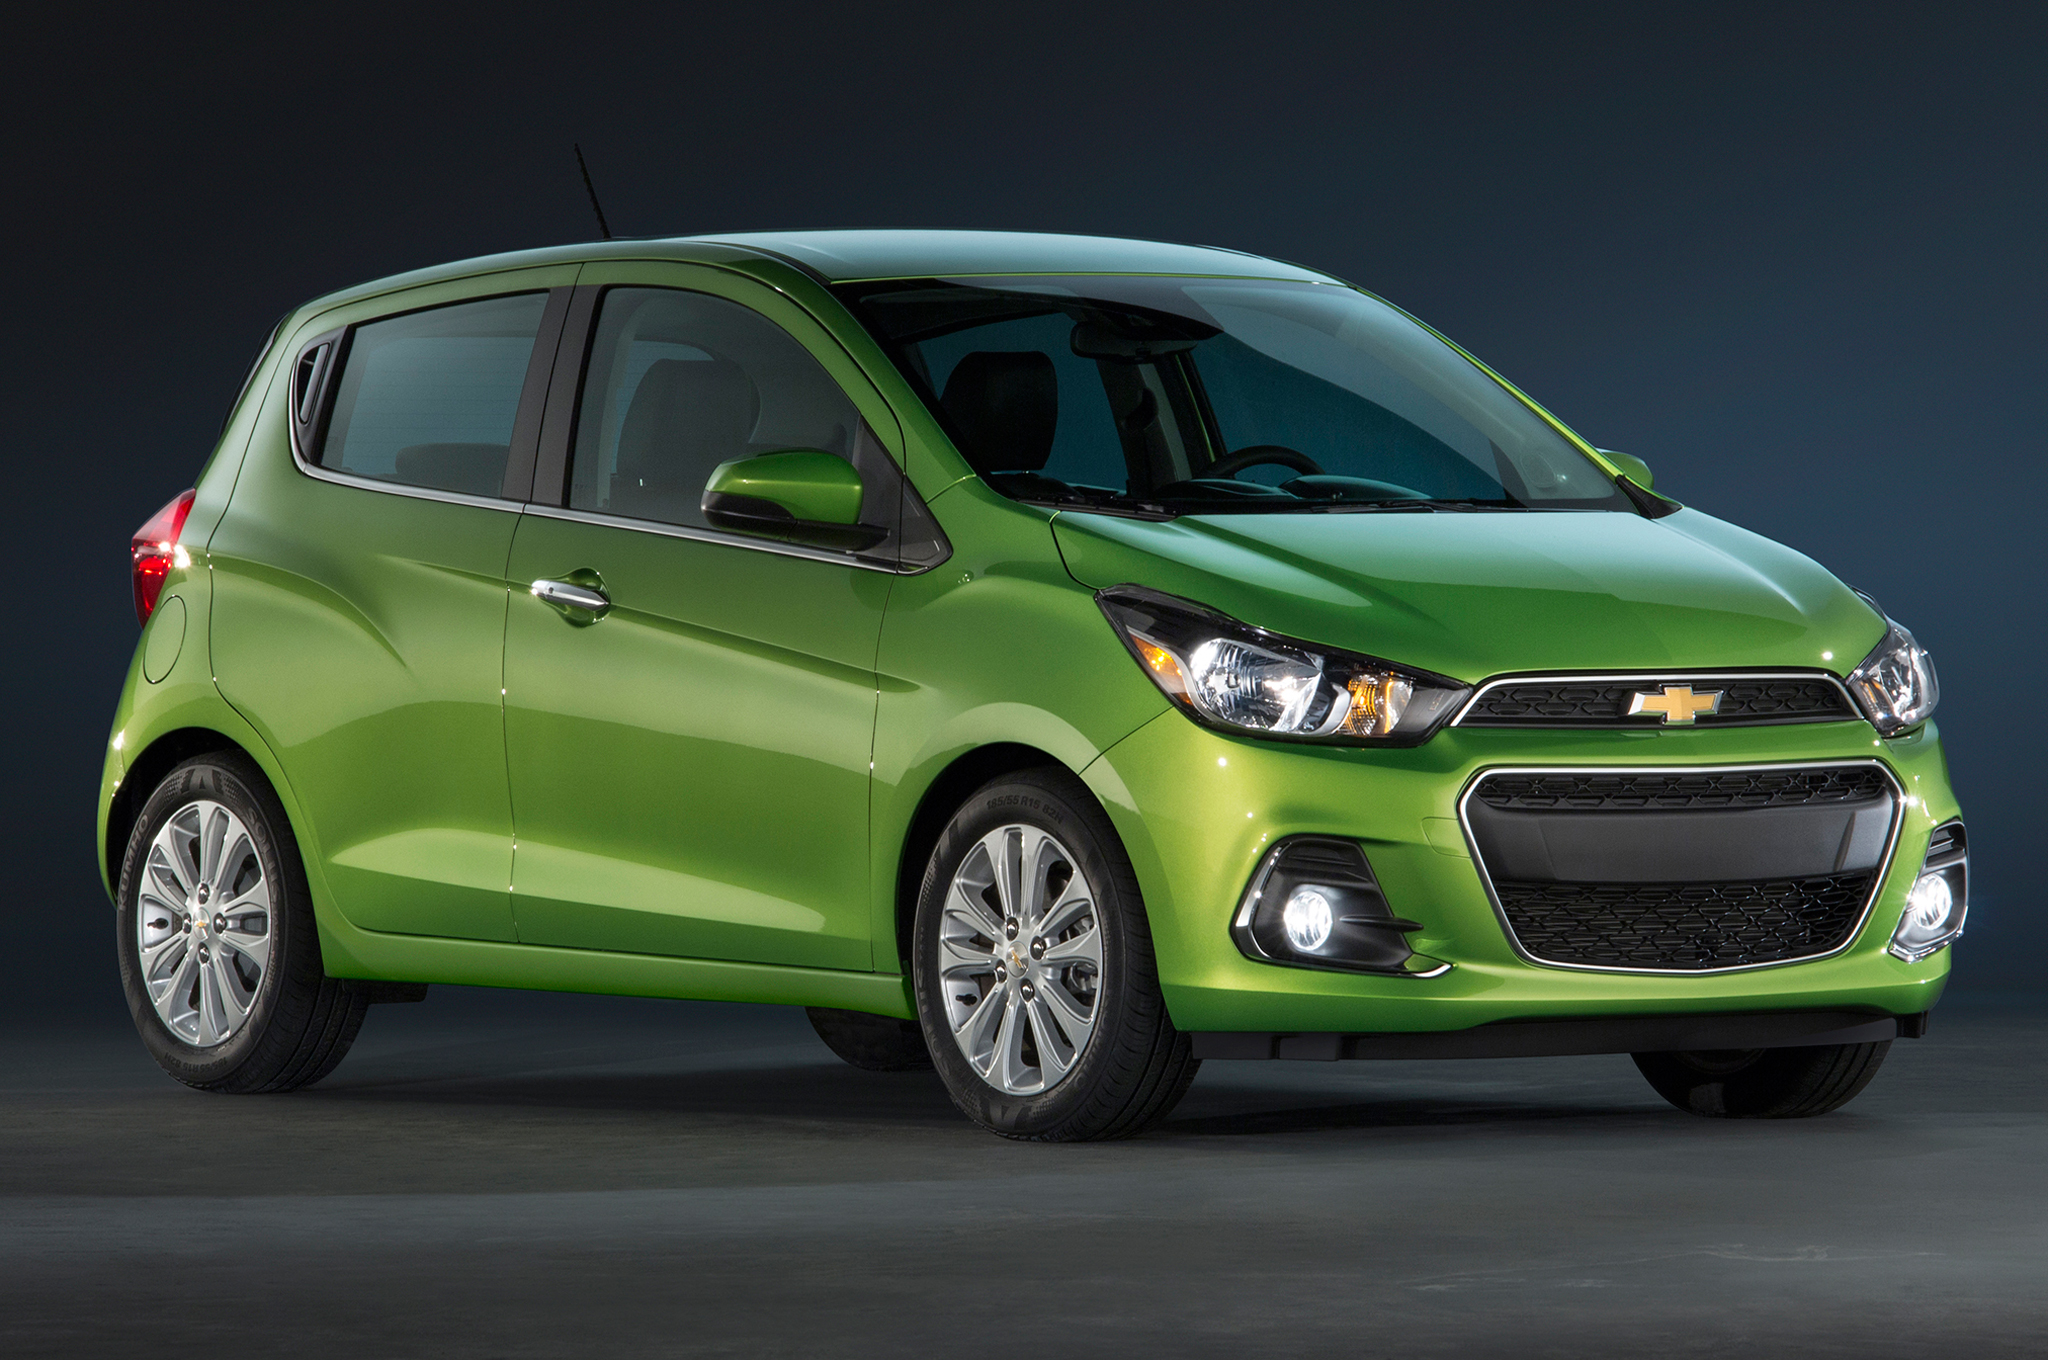 small resolution of 2016 chevrolet spark first look motortrend2016 chevrolet spark first look